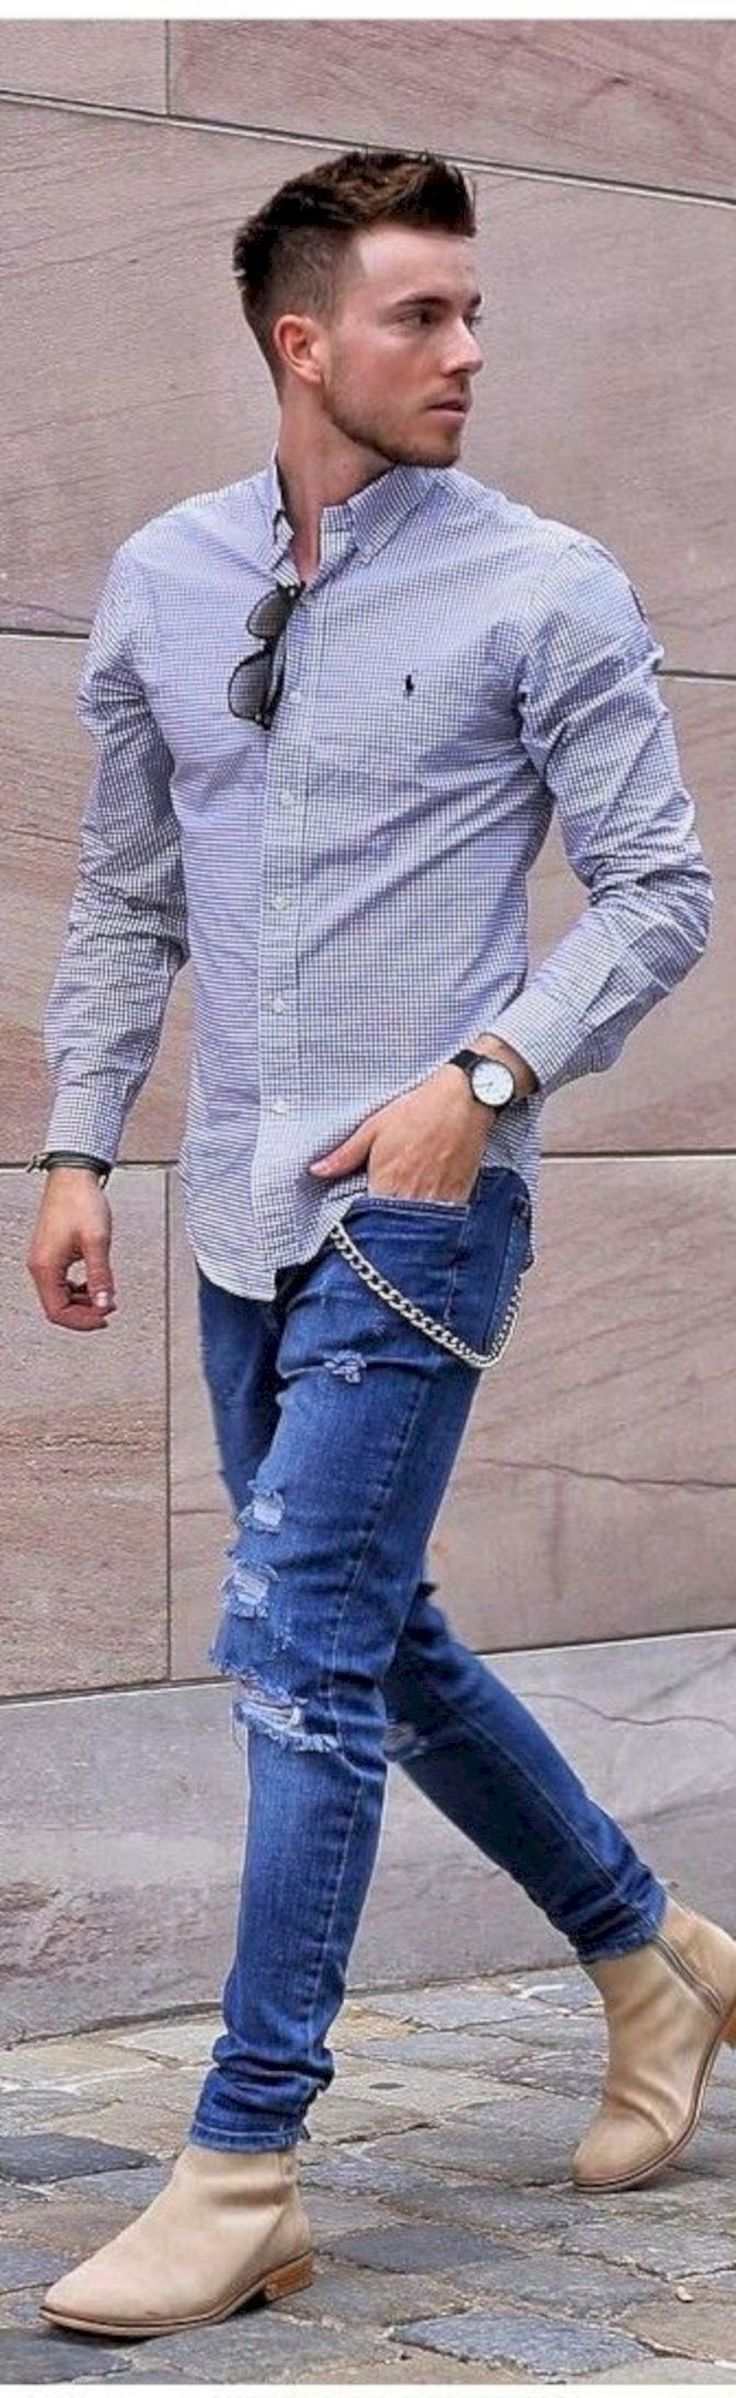 awesome 36 Men's Fashion Casual Jeans Outfits https://attirepin.com/2018/02/18/36-mens-fashion-casual-jeans-outfits/ #men'scasualoutfits #mensjeansoutfit #menoutfits (scheduled via http://www.tailwindapp.com?utm_source=pinterest&utm_medium=twpin) #casualoutfits #awsomeclothing